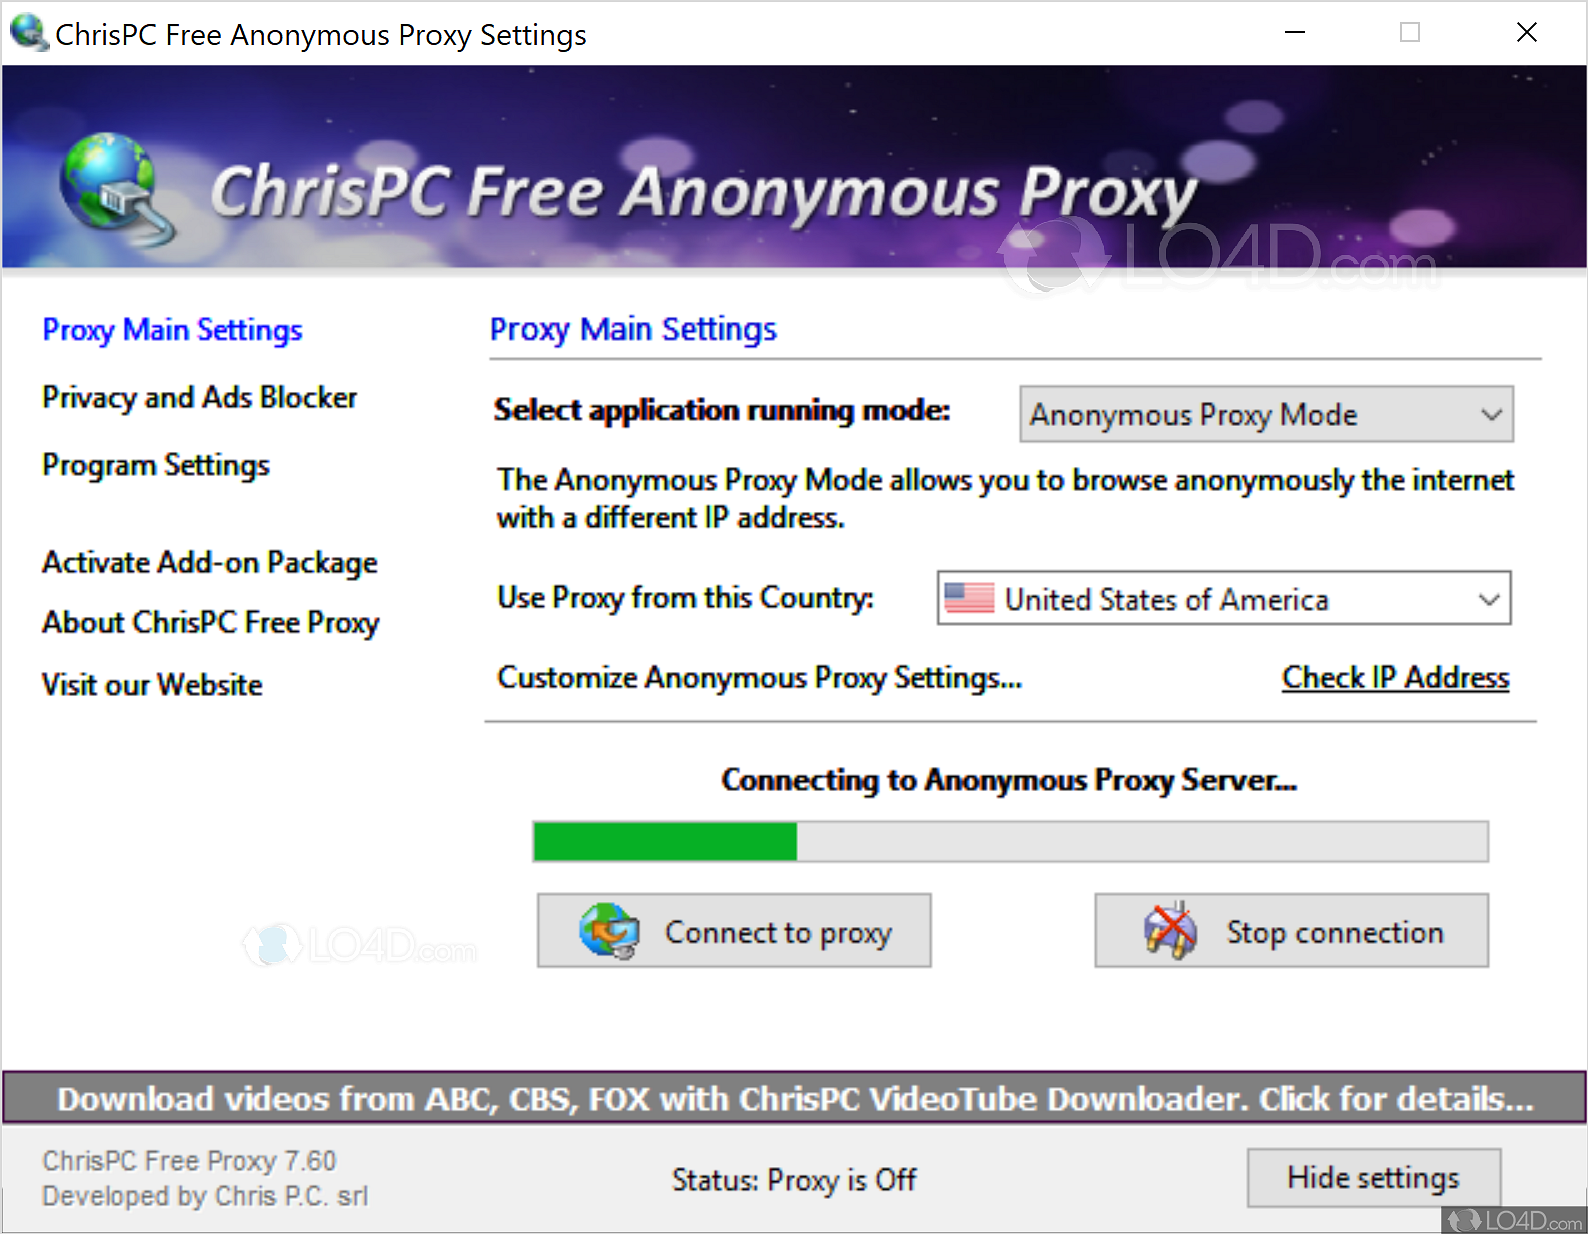 chrispc free anonymous proxy 64 bits